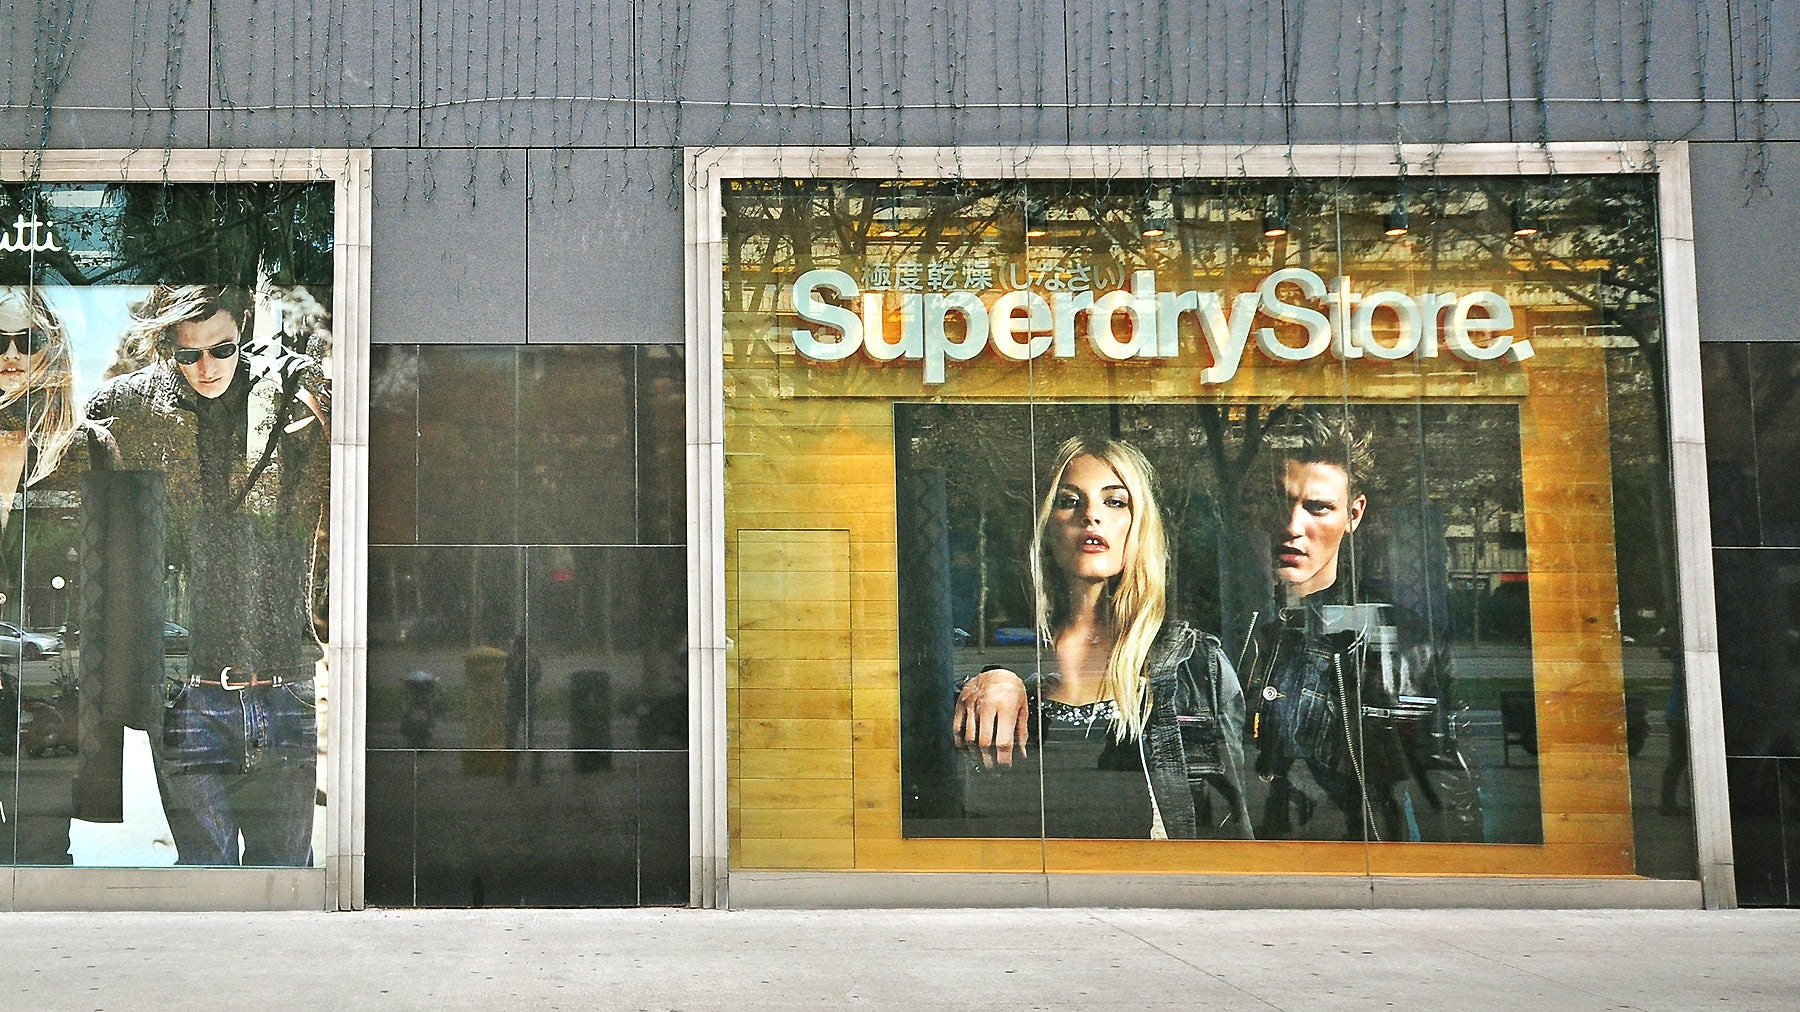 Superdry store   Source: Shutterstock